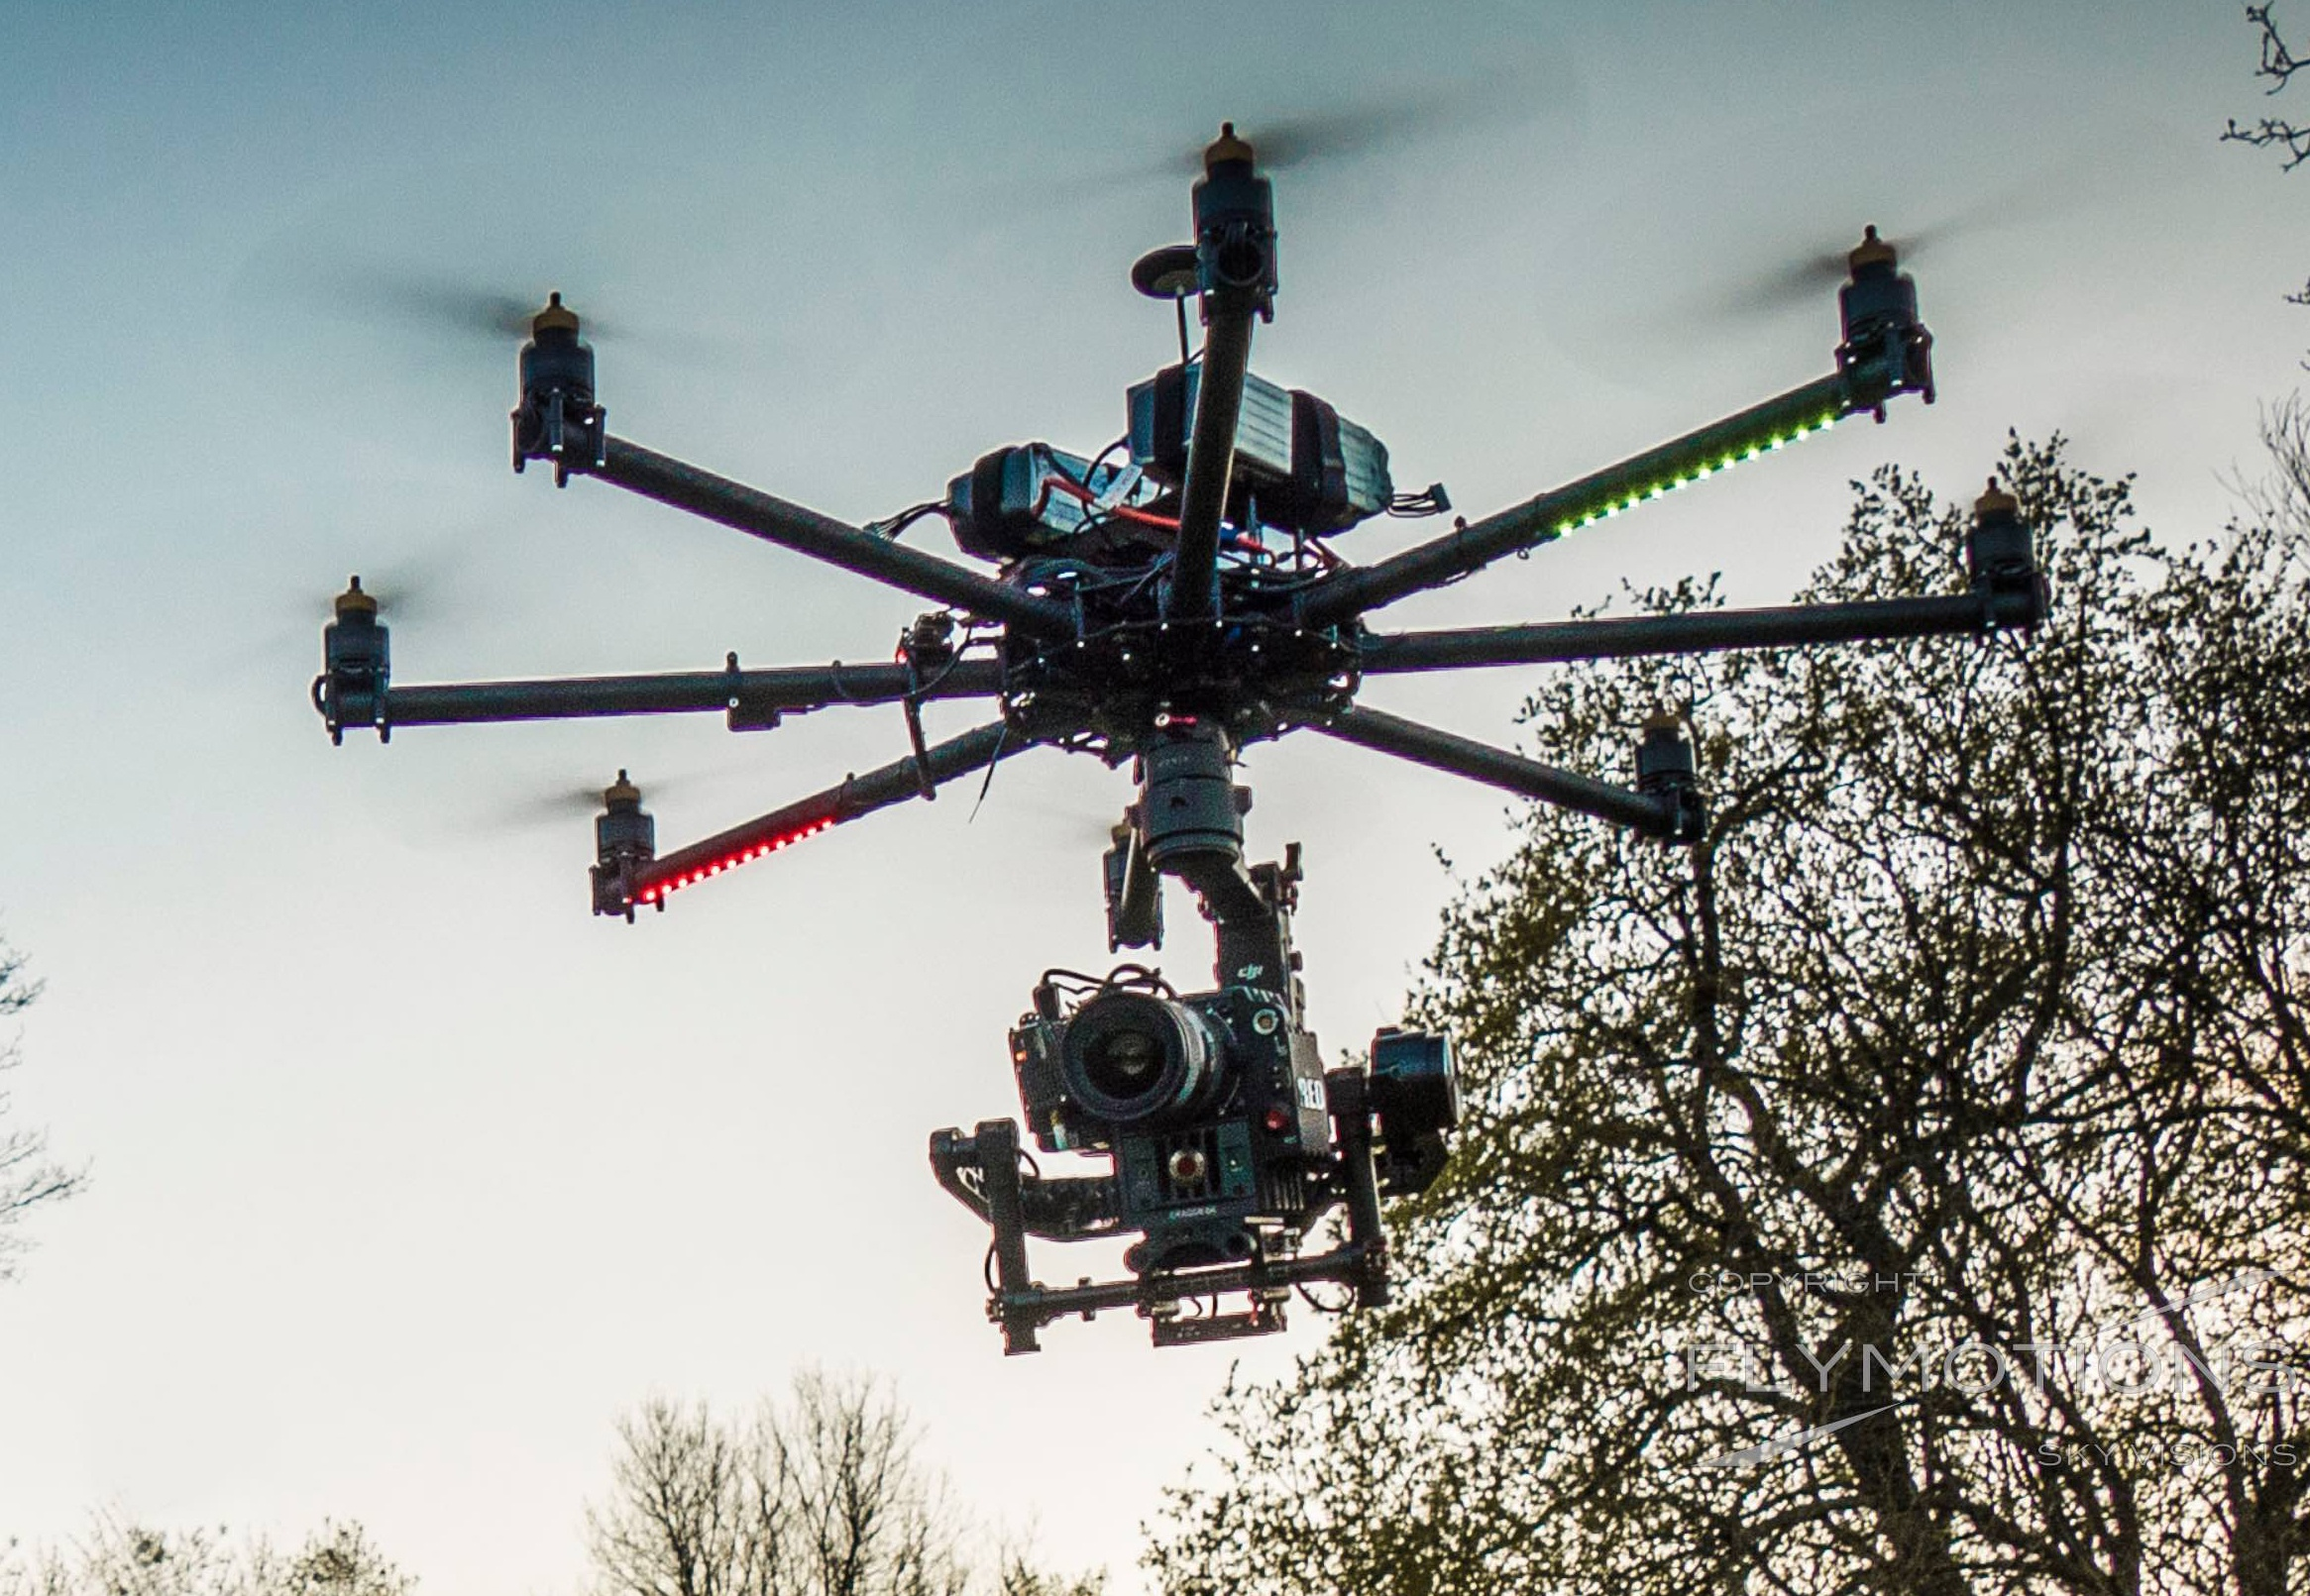 drone-cinestar8-octocopter-reddragon-cropped.jpg